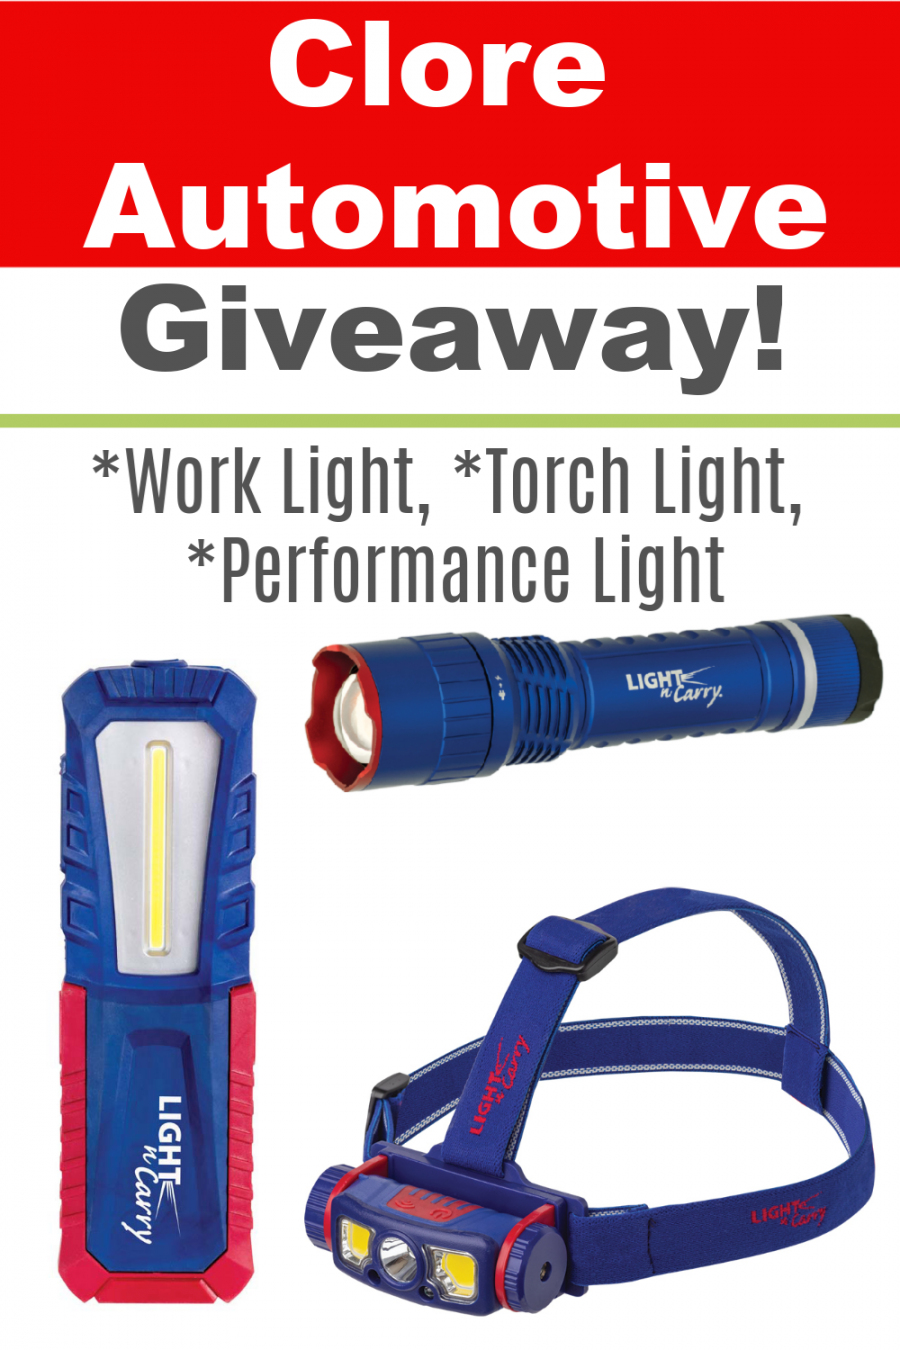 Clore Automotive Giveaway ~ Men Will Espeically Love This Prize Package!